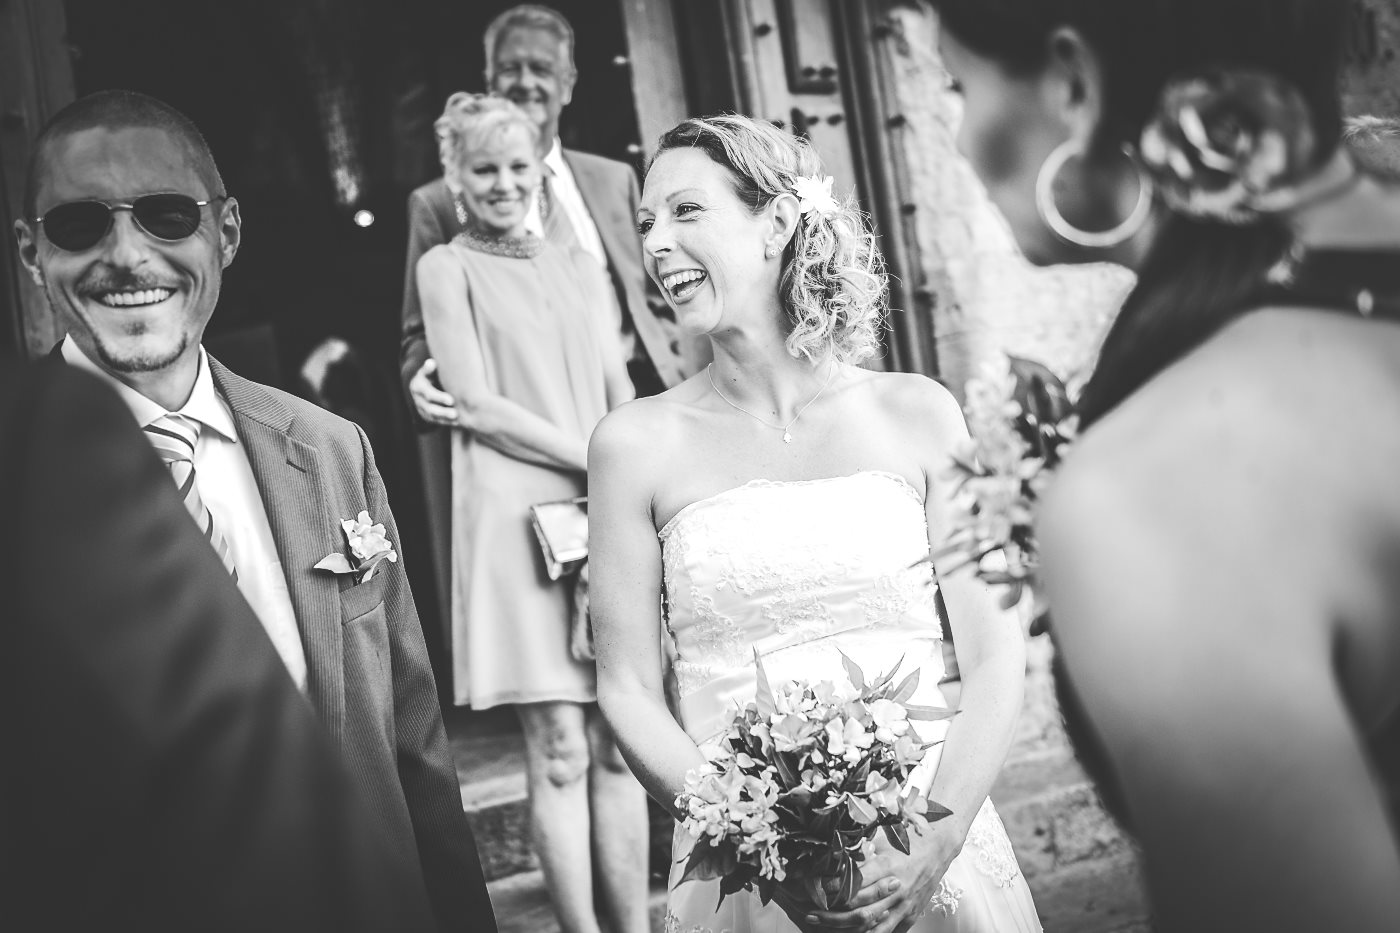 photographer_wedding_volterra_03.jpg